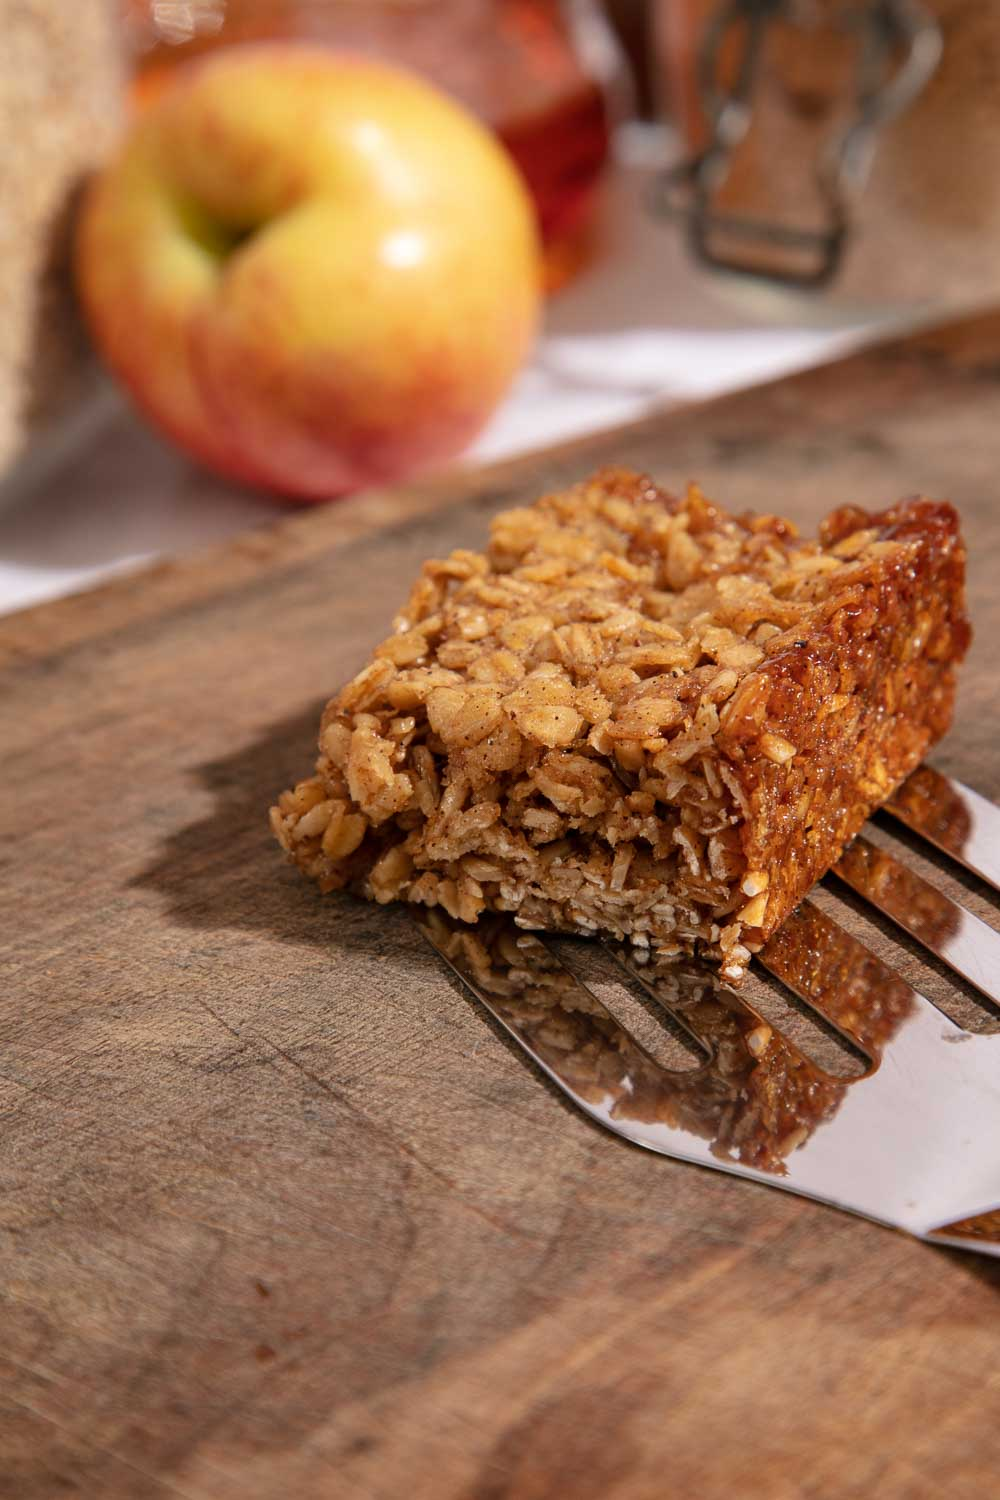 A slice of vegan apple and cinnamon flapjack on a wooden board.